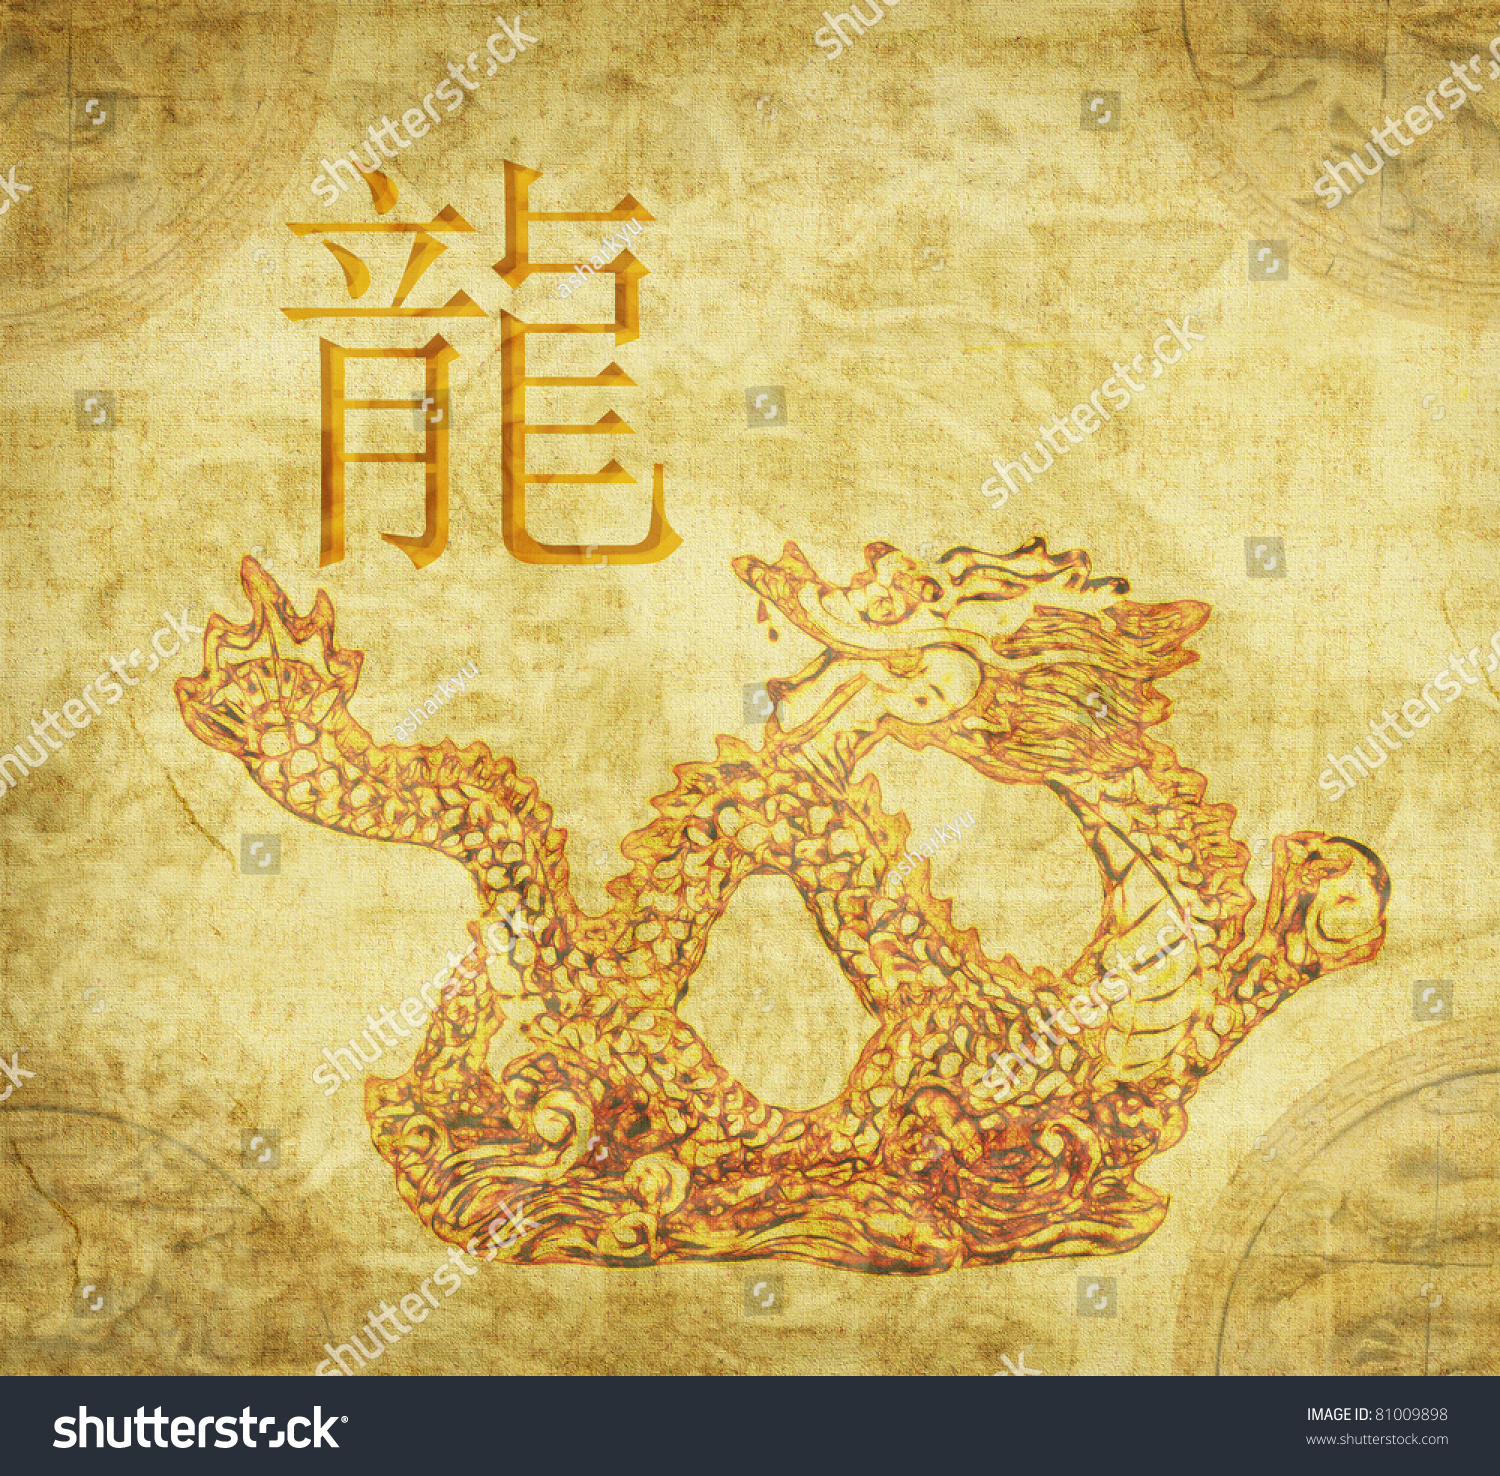 Ancient Chinese Dragon Texture Background Stockillustration 81009898